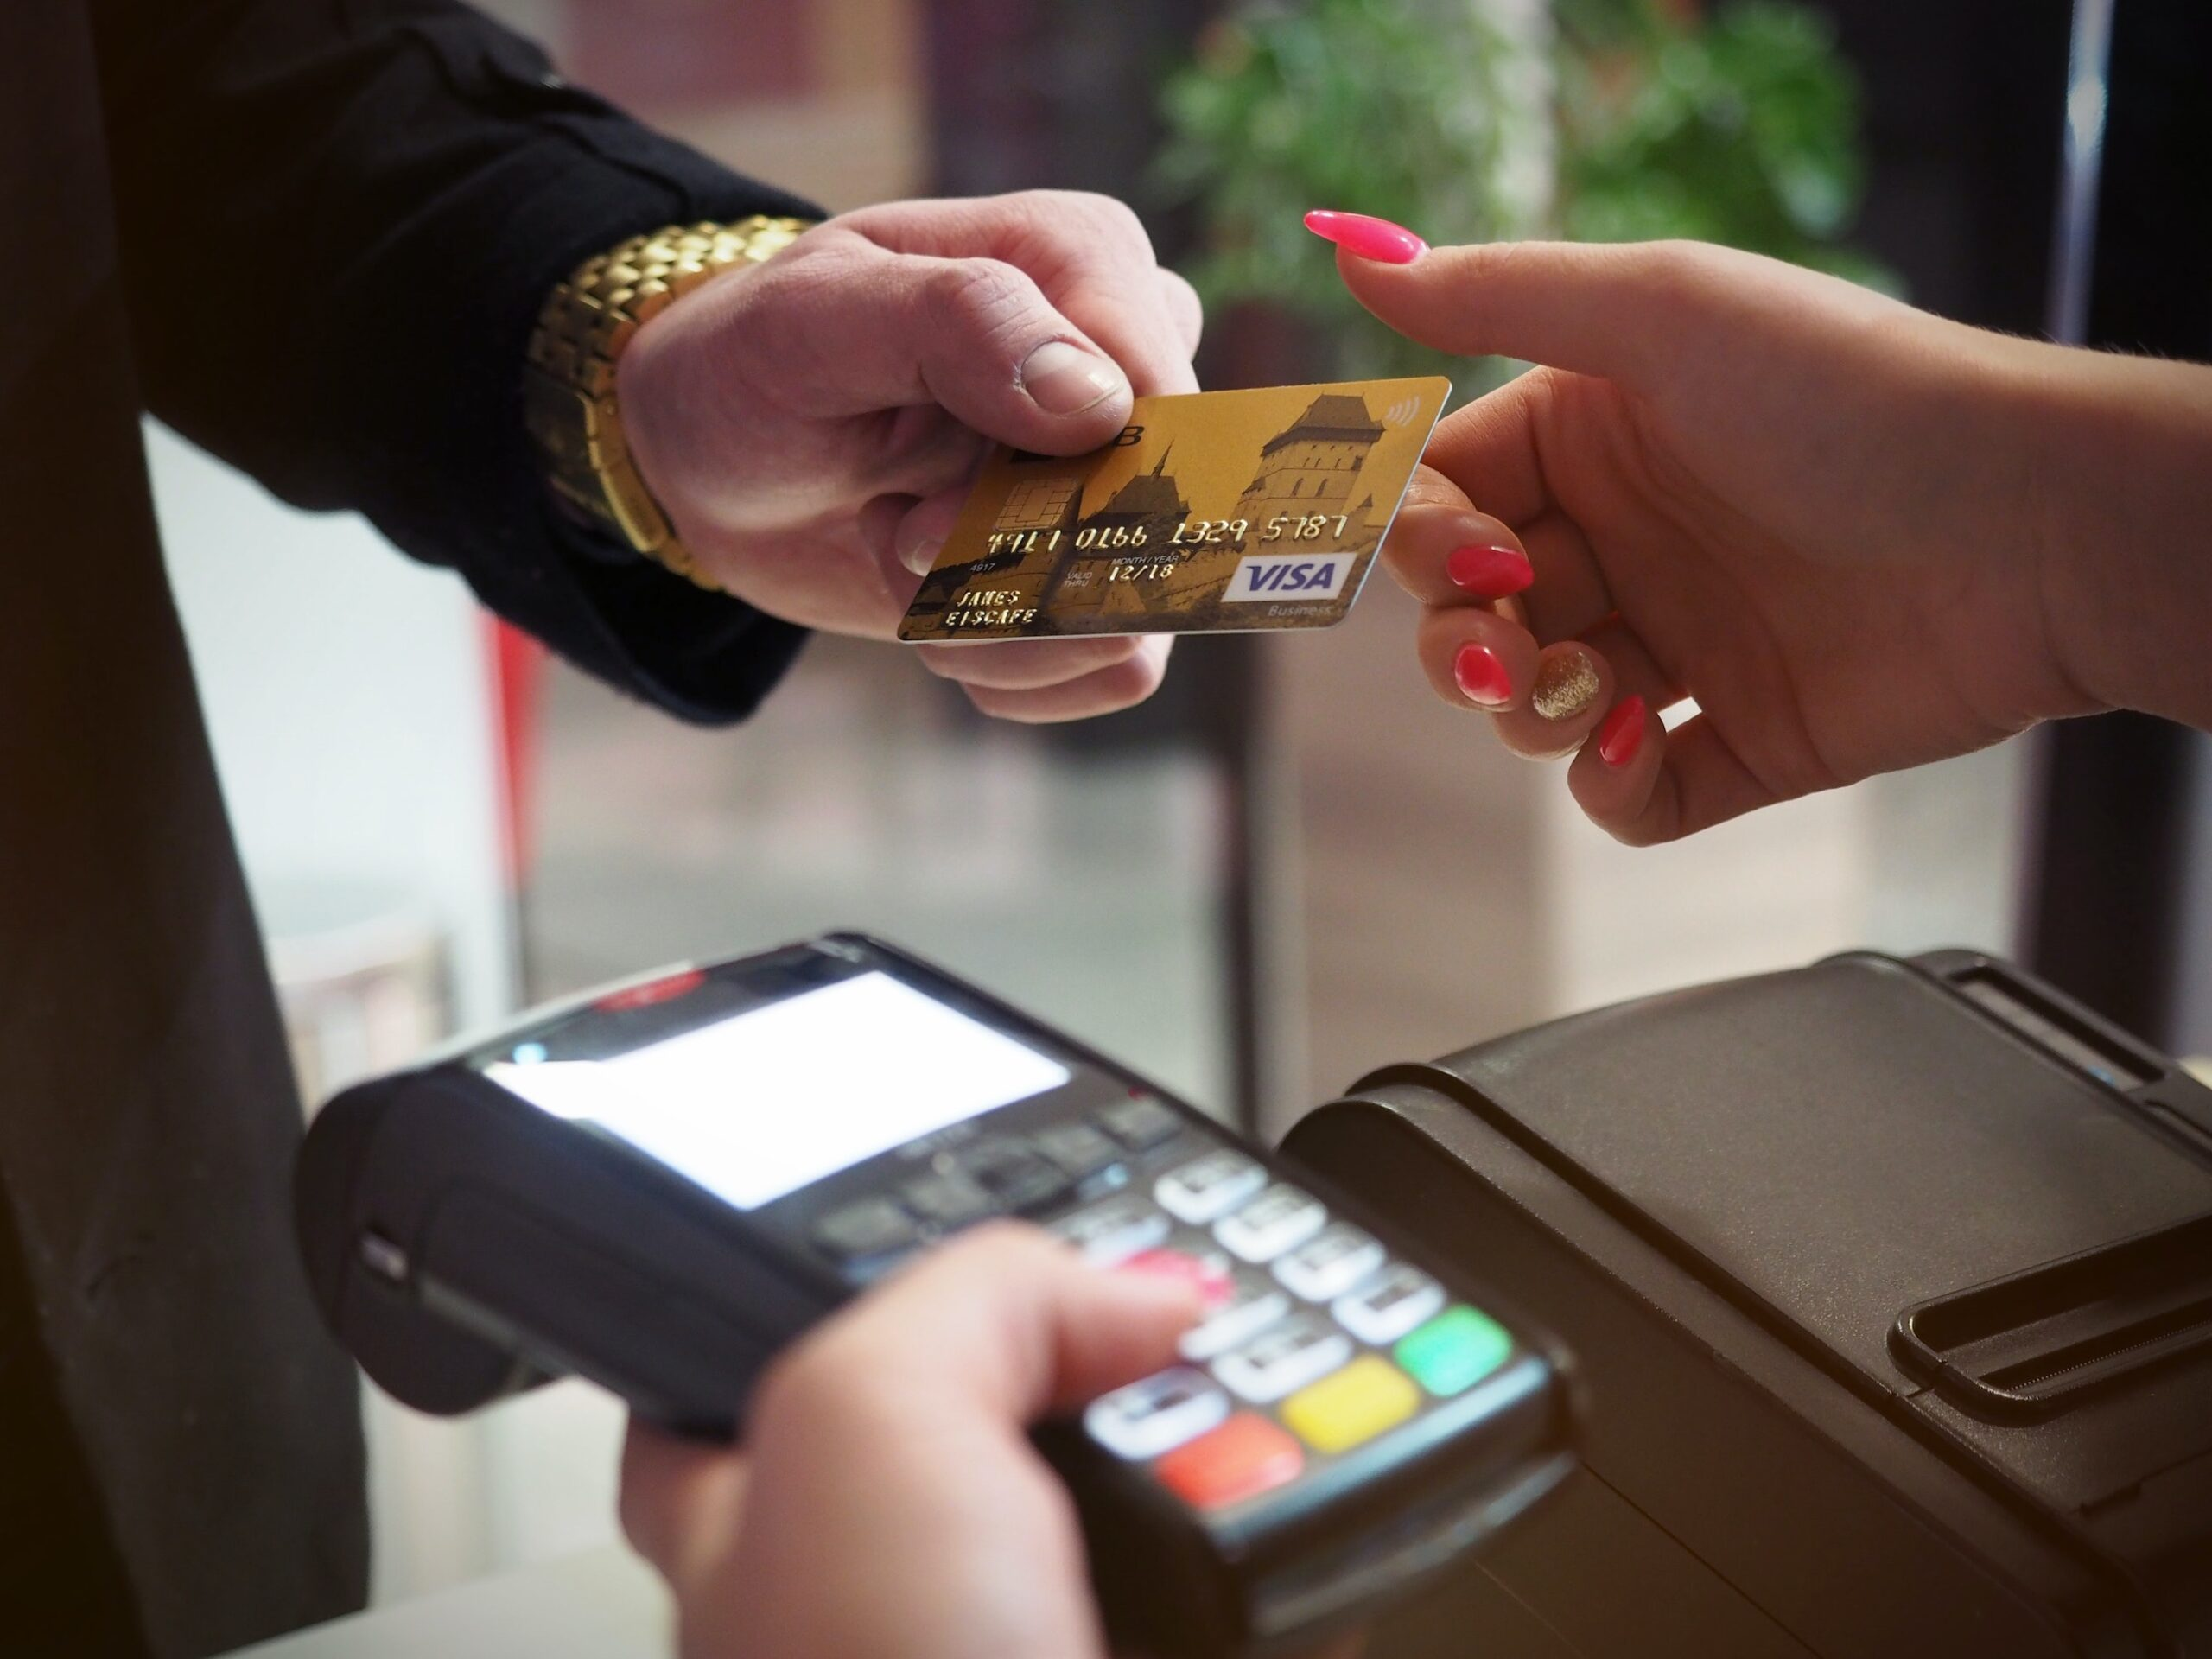 Person handing over credit card